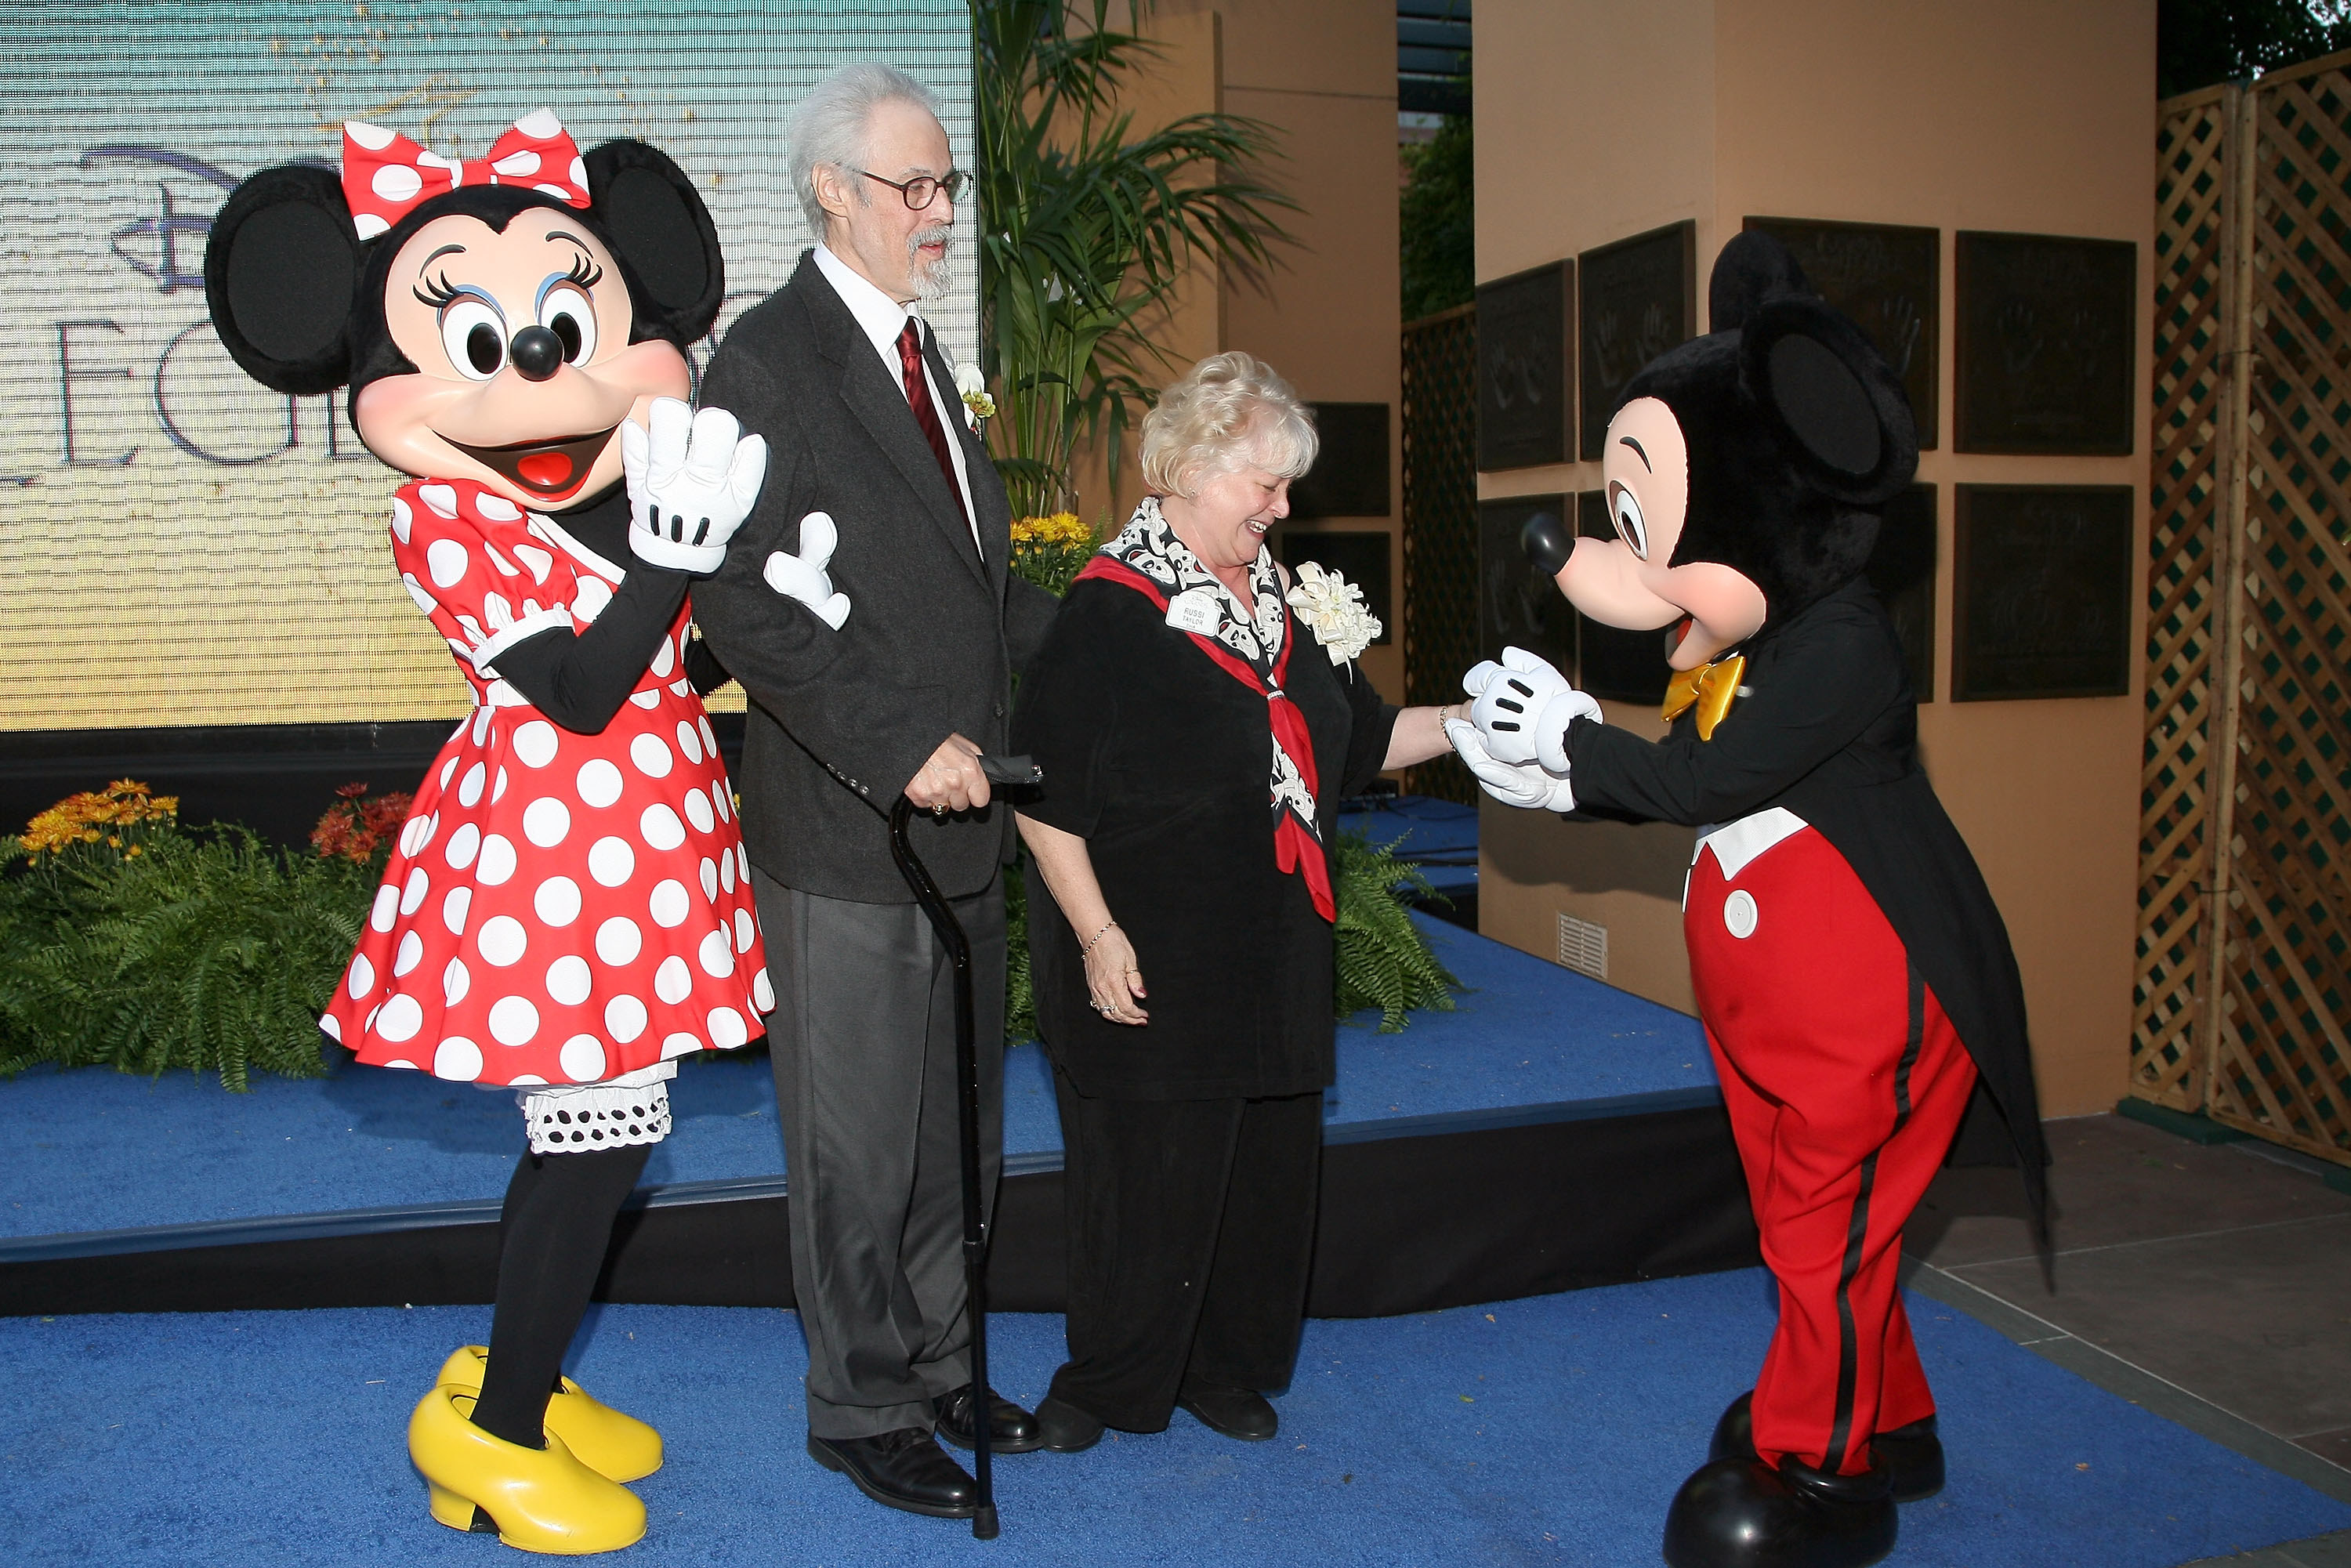 Wayne Allwine and Russi Taylor standing next to Minnie and Mickey Mouse, respectively, at a premiere.